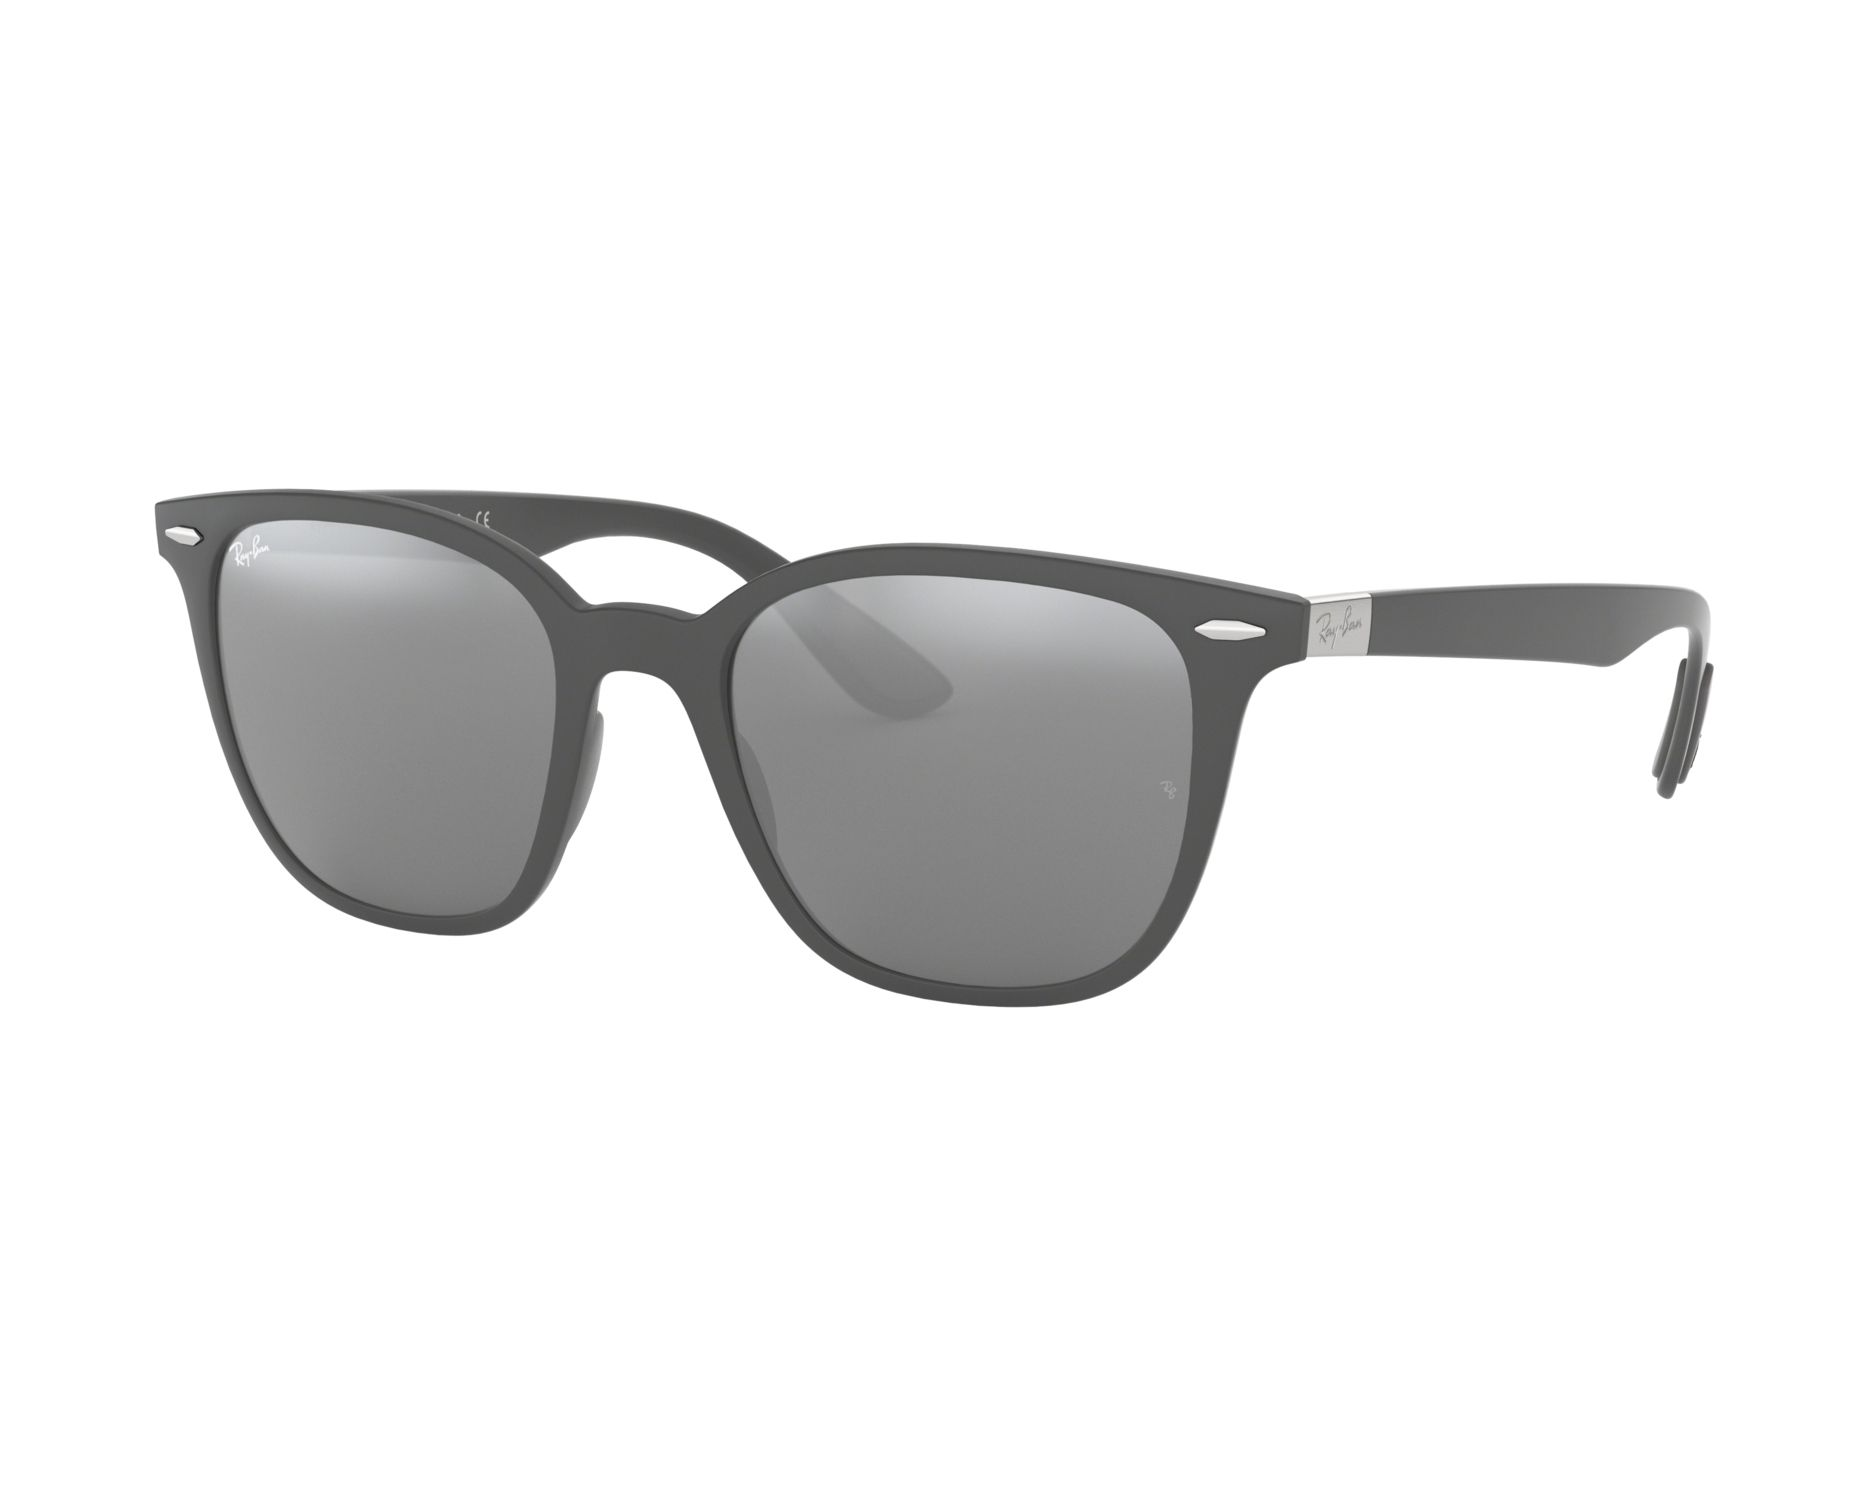 ddc98305d3 Sunglasses Ray-Ban RB-4297 633288 51-19 Grey